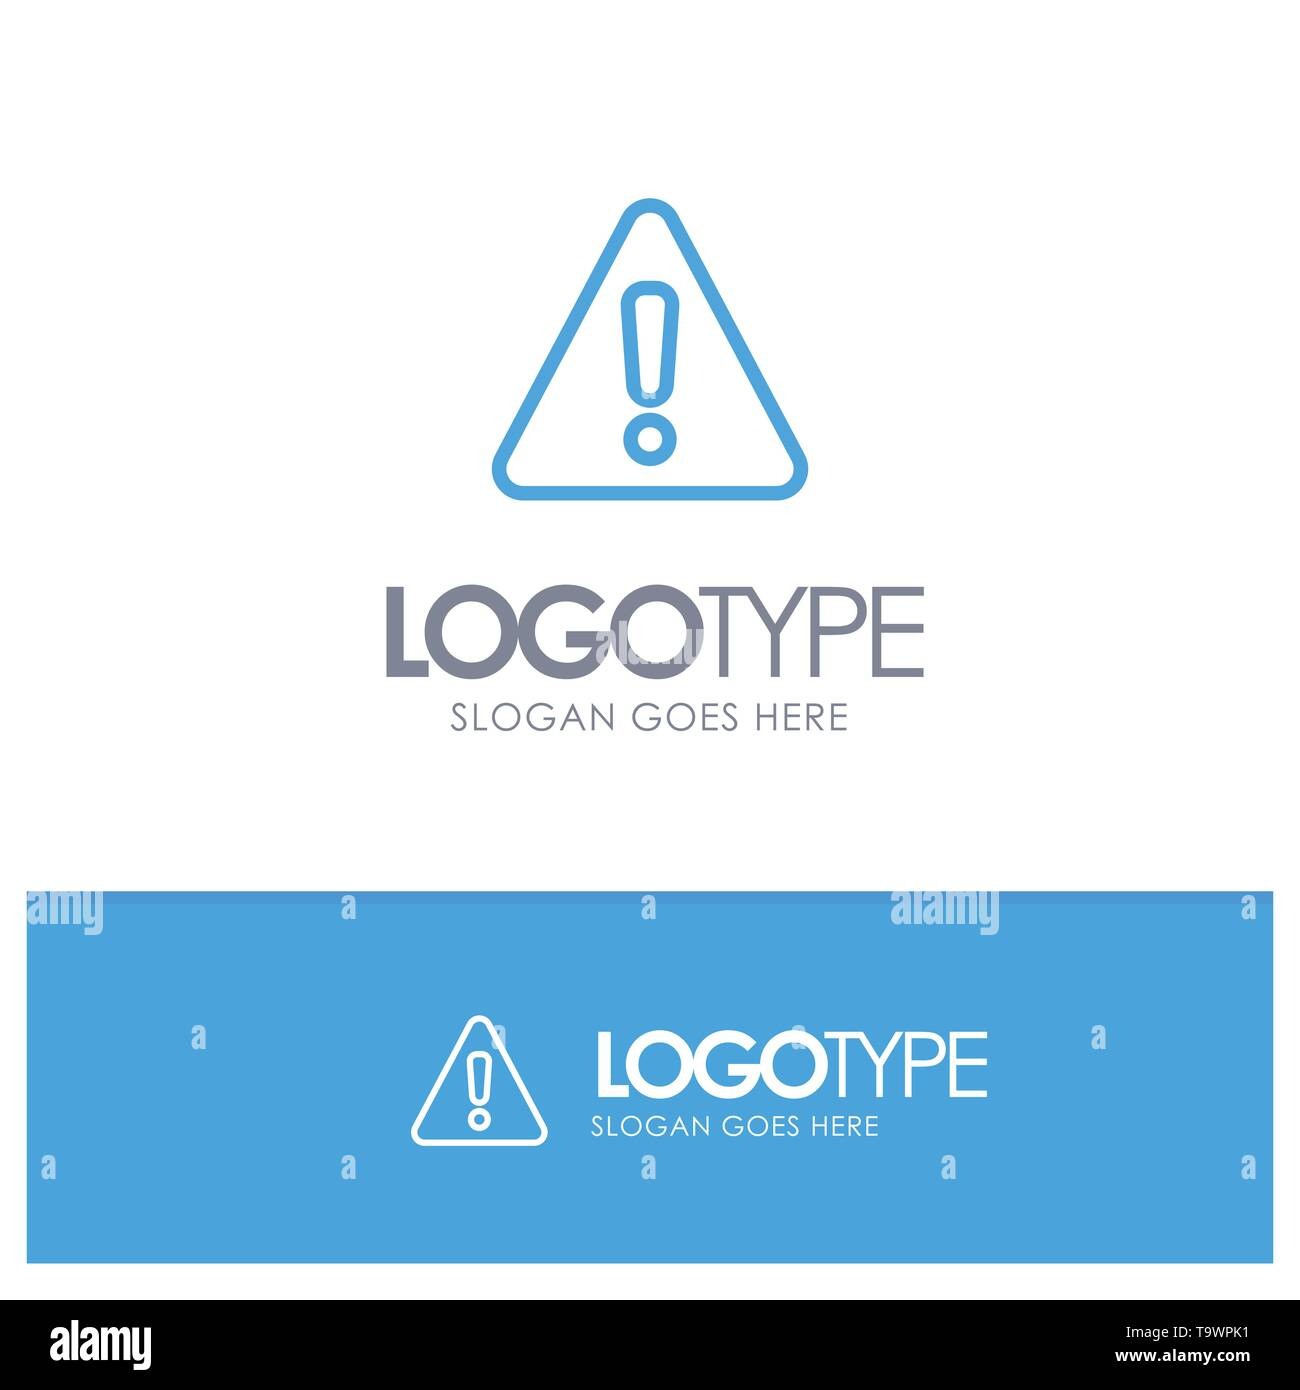 Alert, Danger, Warning, Sign Blue Outline Logo Place for Tagline - Stock Image